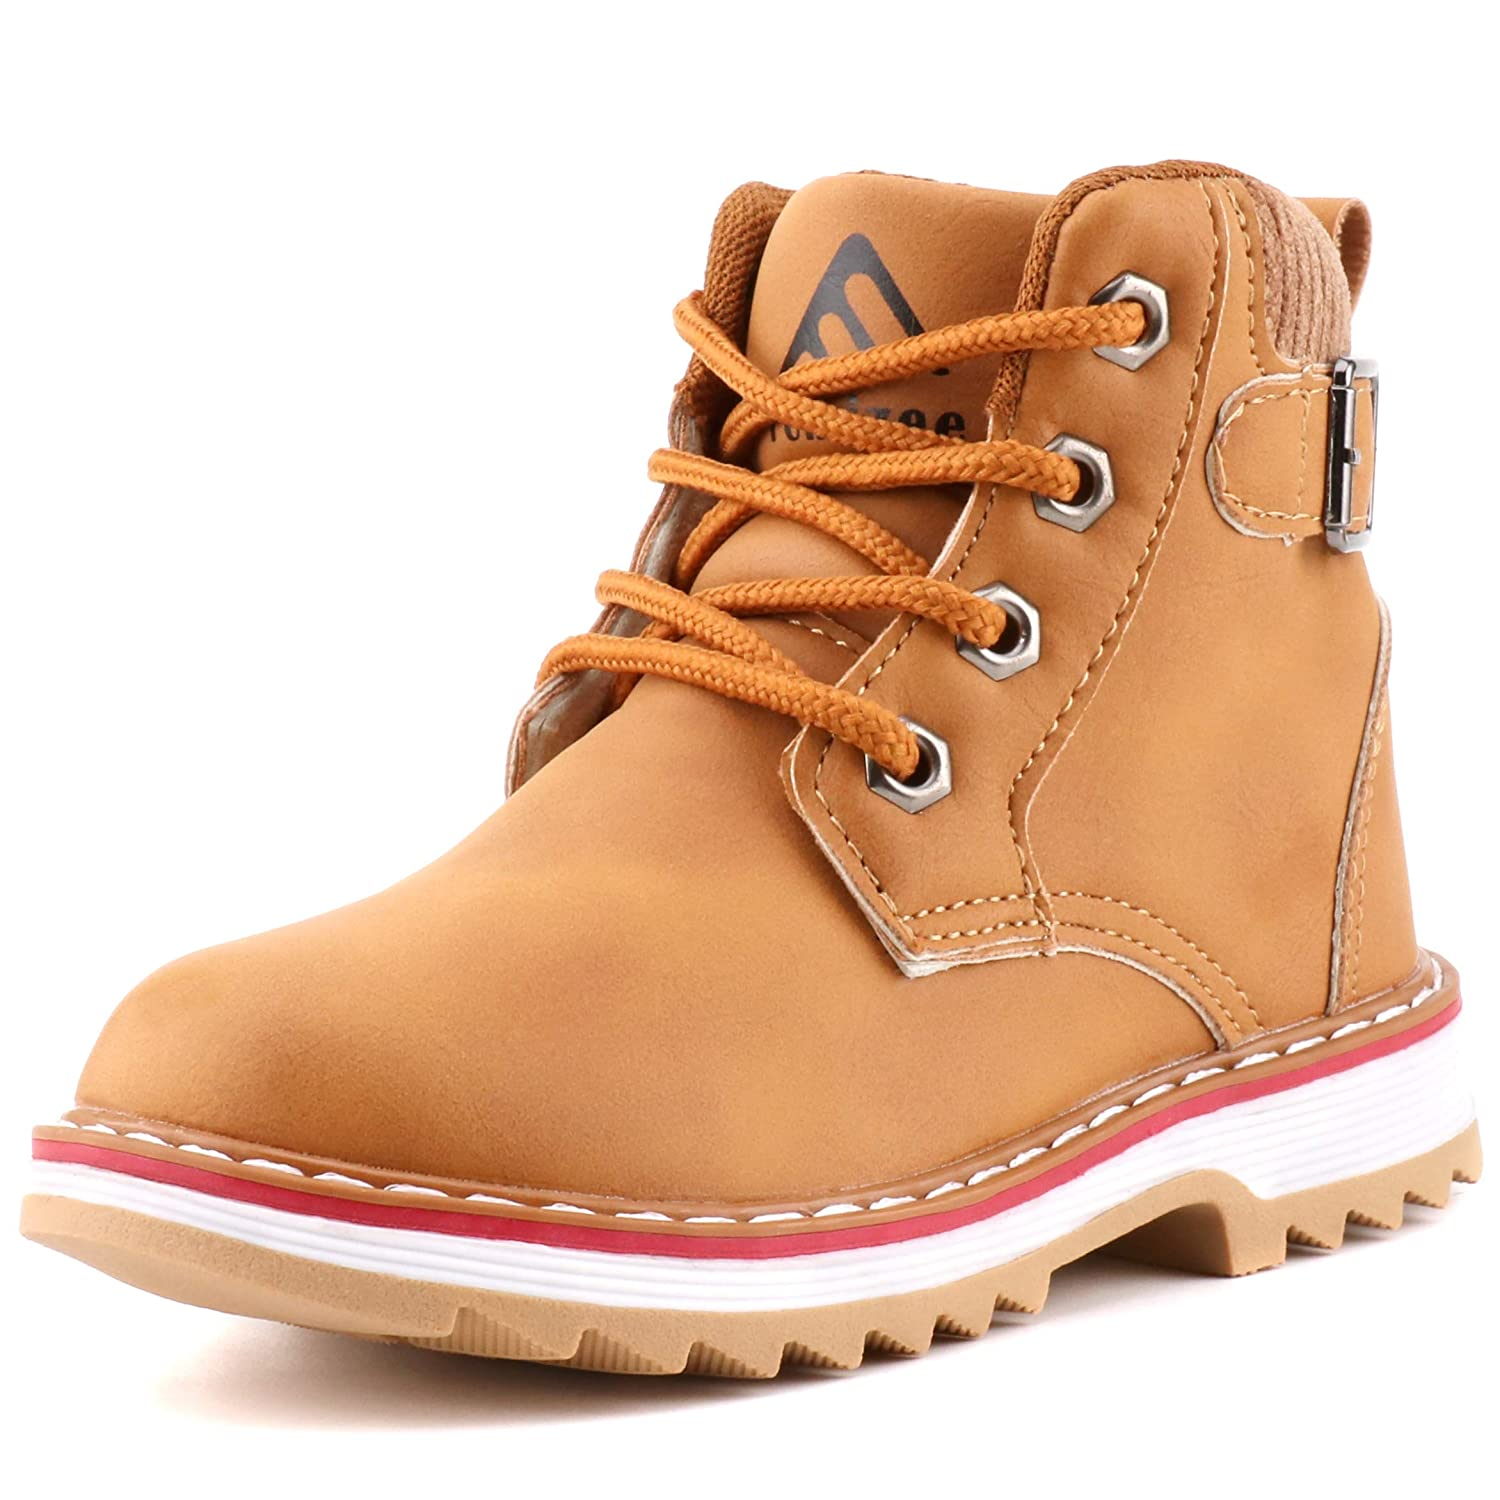 741bc00e062 Femizee Boys Lace Up Work Boots Classic Waterproof Hiking Booties for  Kids(Toddler/Little Kid)